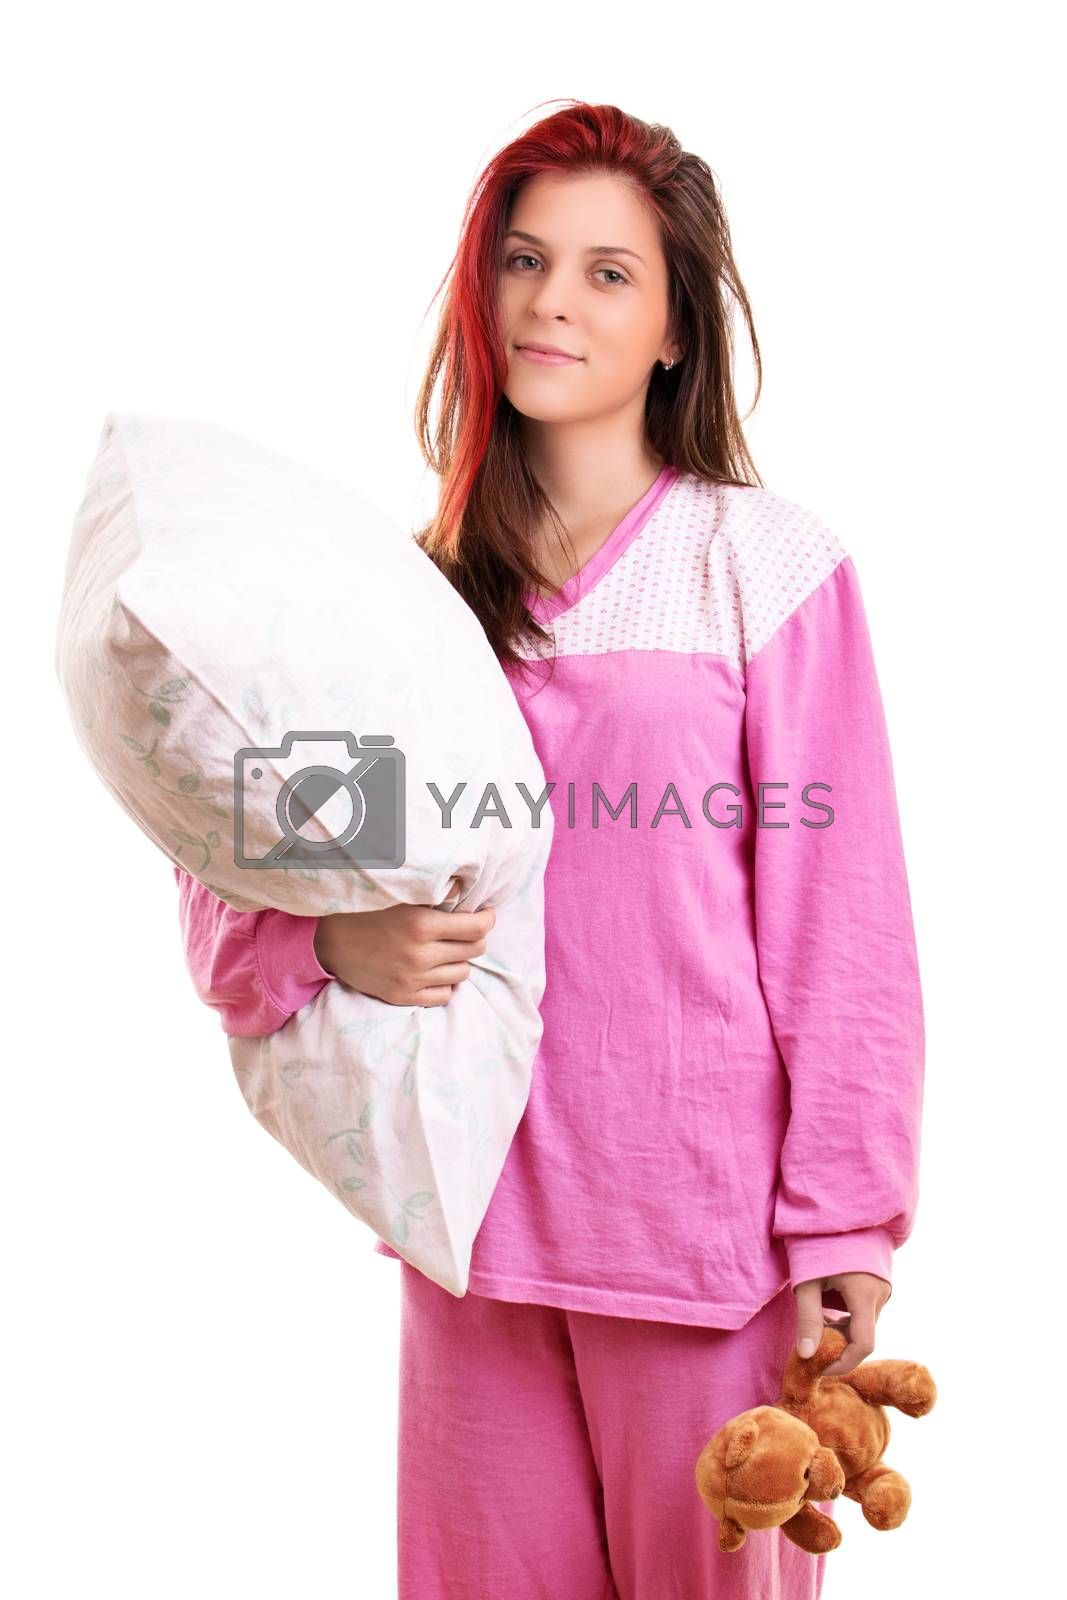 Beautiful smiling young girl in pink pajamas holding a pillow and a teddy bear, preparing to go to sleep, isolated on white background. Sleep and relaxation concept.